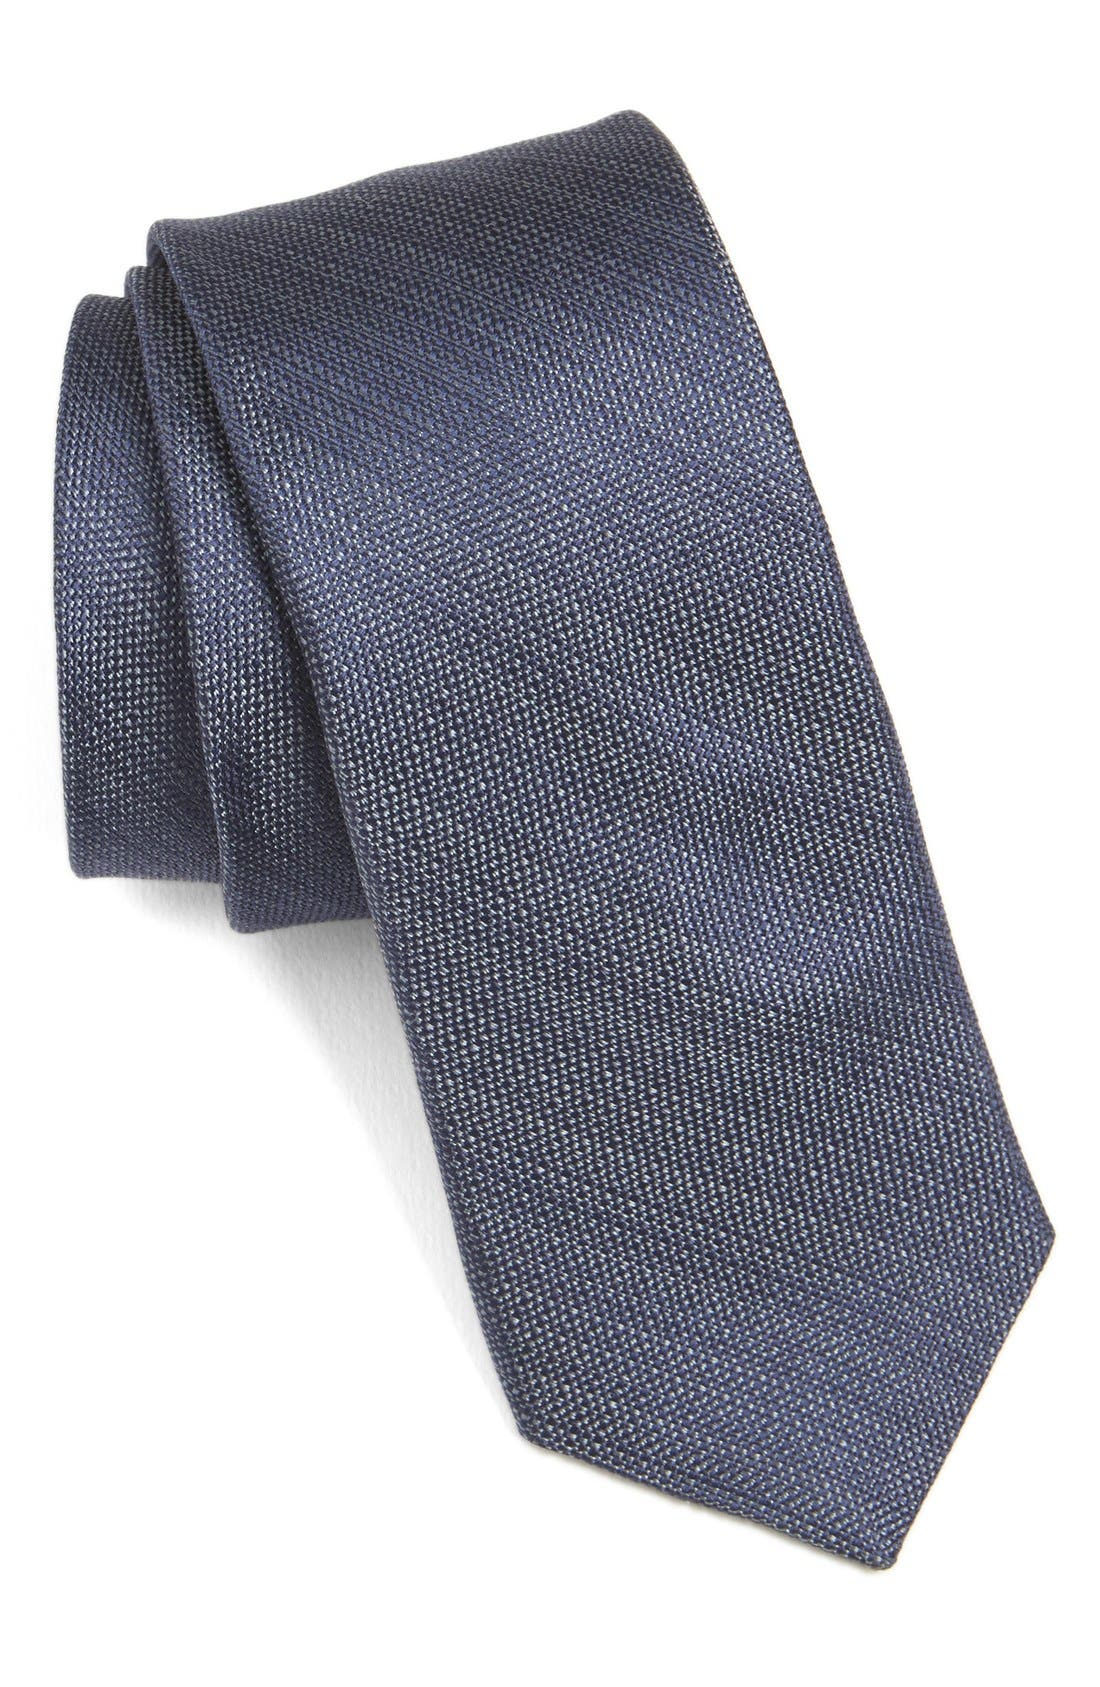 Solid Skinny Silk Tie,                             Main thumbnail 1, color,                             Navy/ Grey